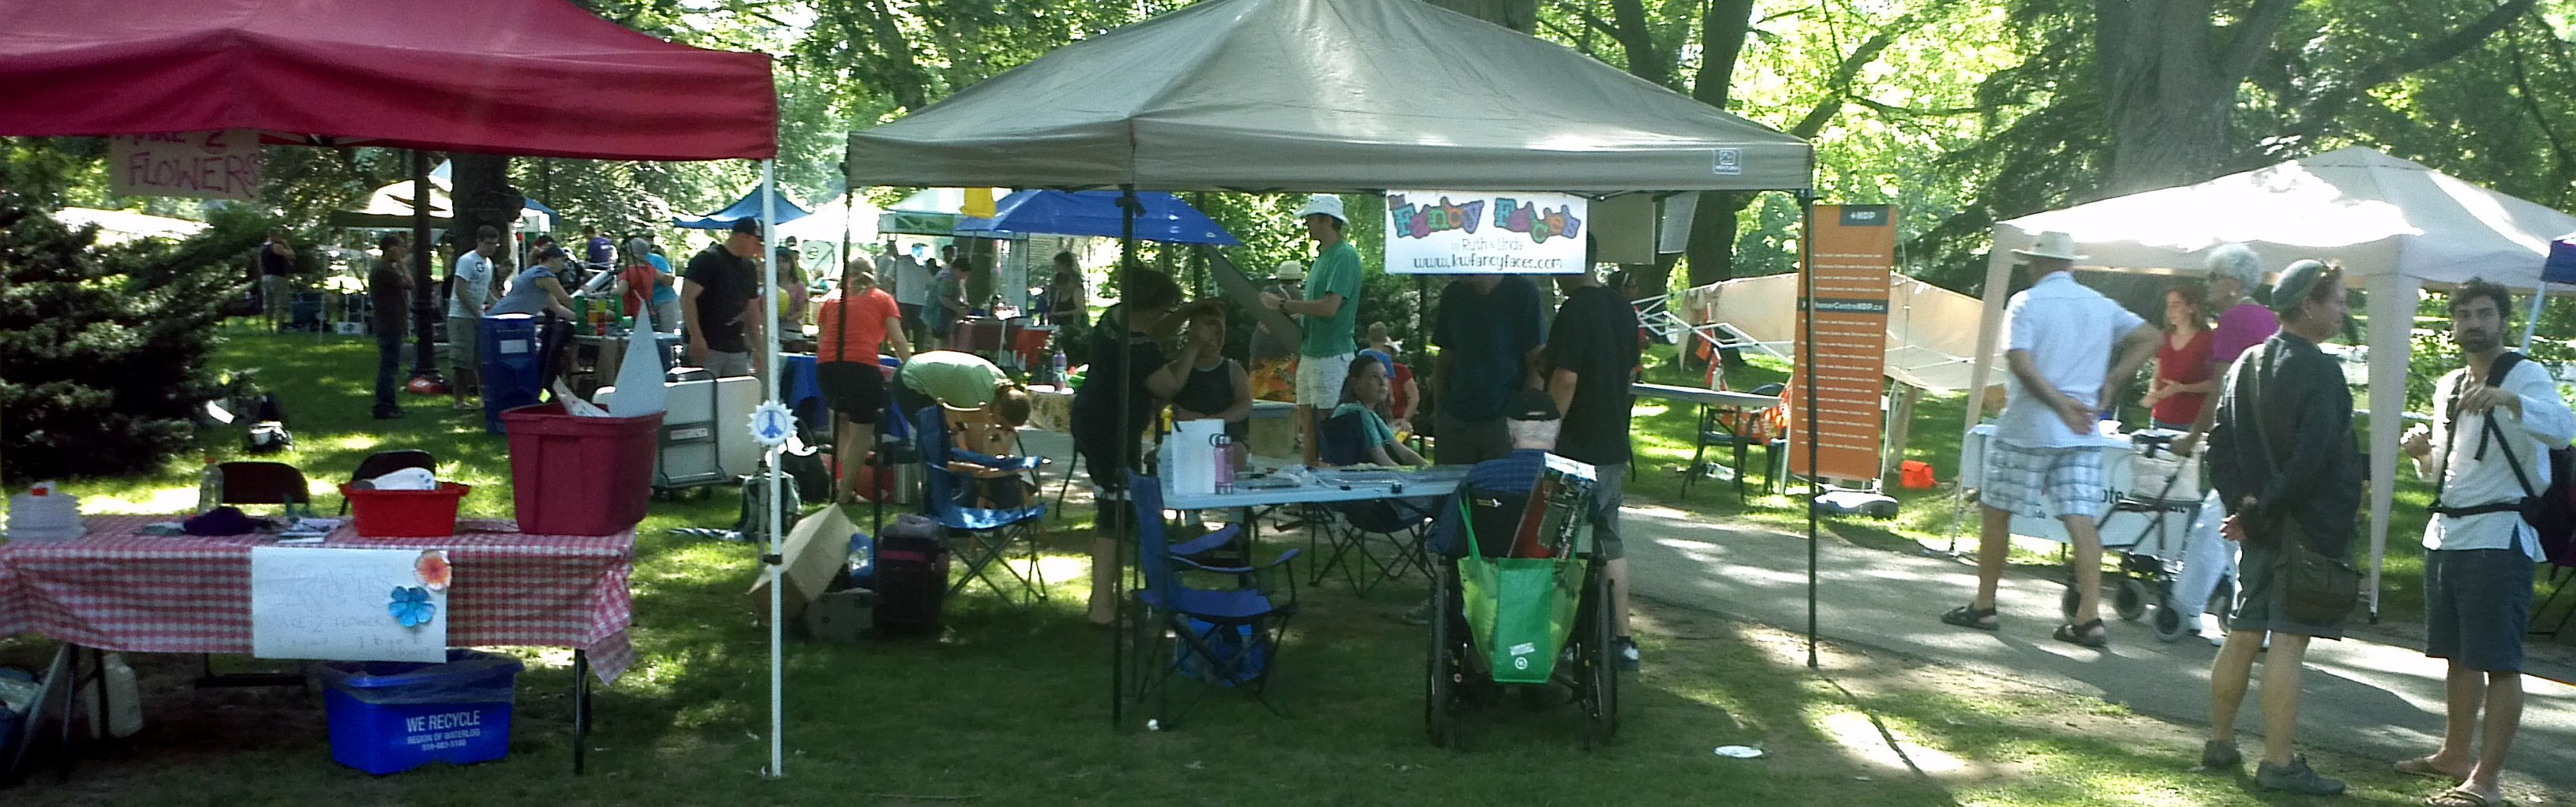 Booths at the Nonviolence Festival, 2013